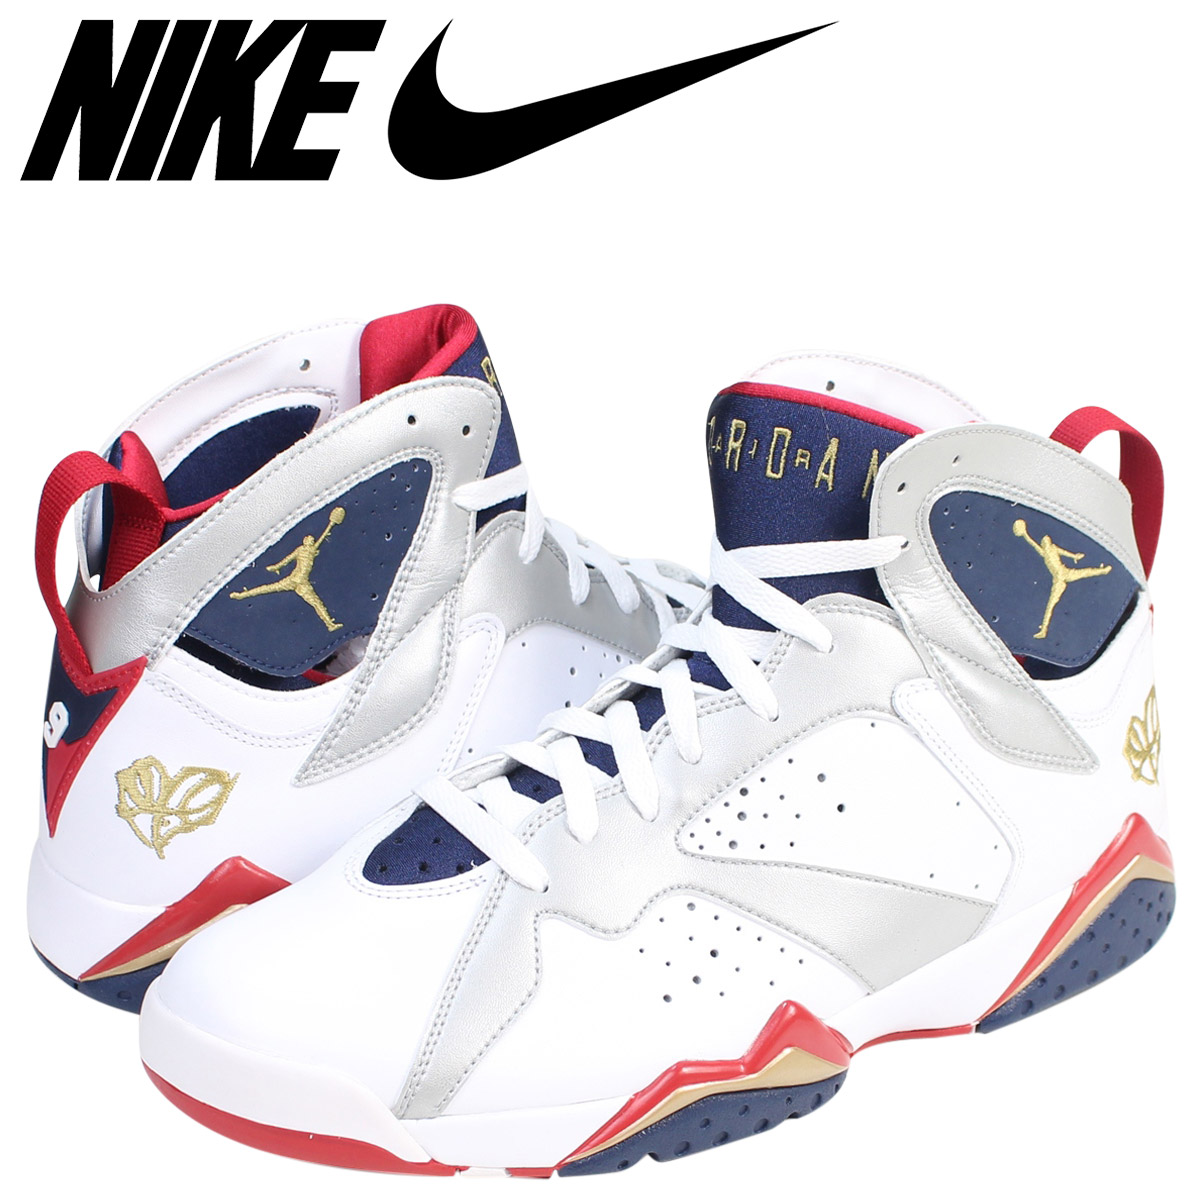 hot sale online 93f6f 3b5e5 NIKE Nike Air Jordan 7 nostalgic sneakers AIR JORDAN 7 RETRO OLYMPIC  304,775-103 men's shoes white white